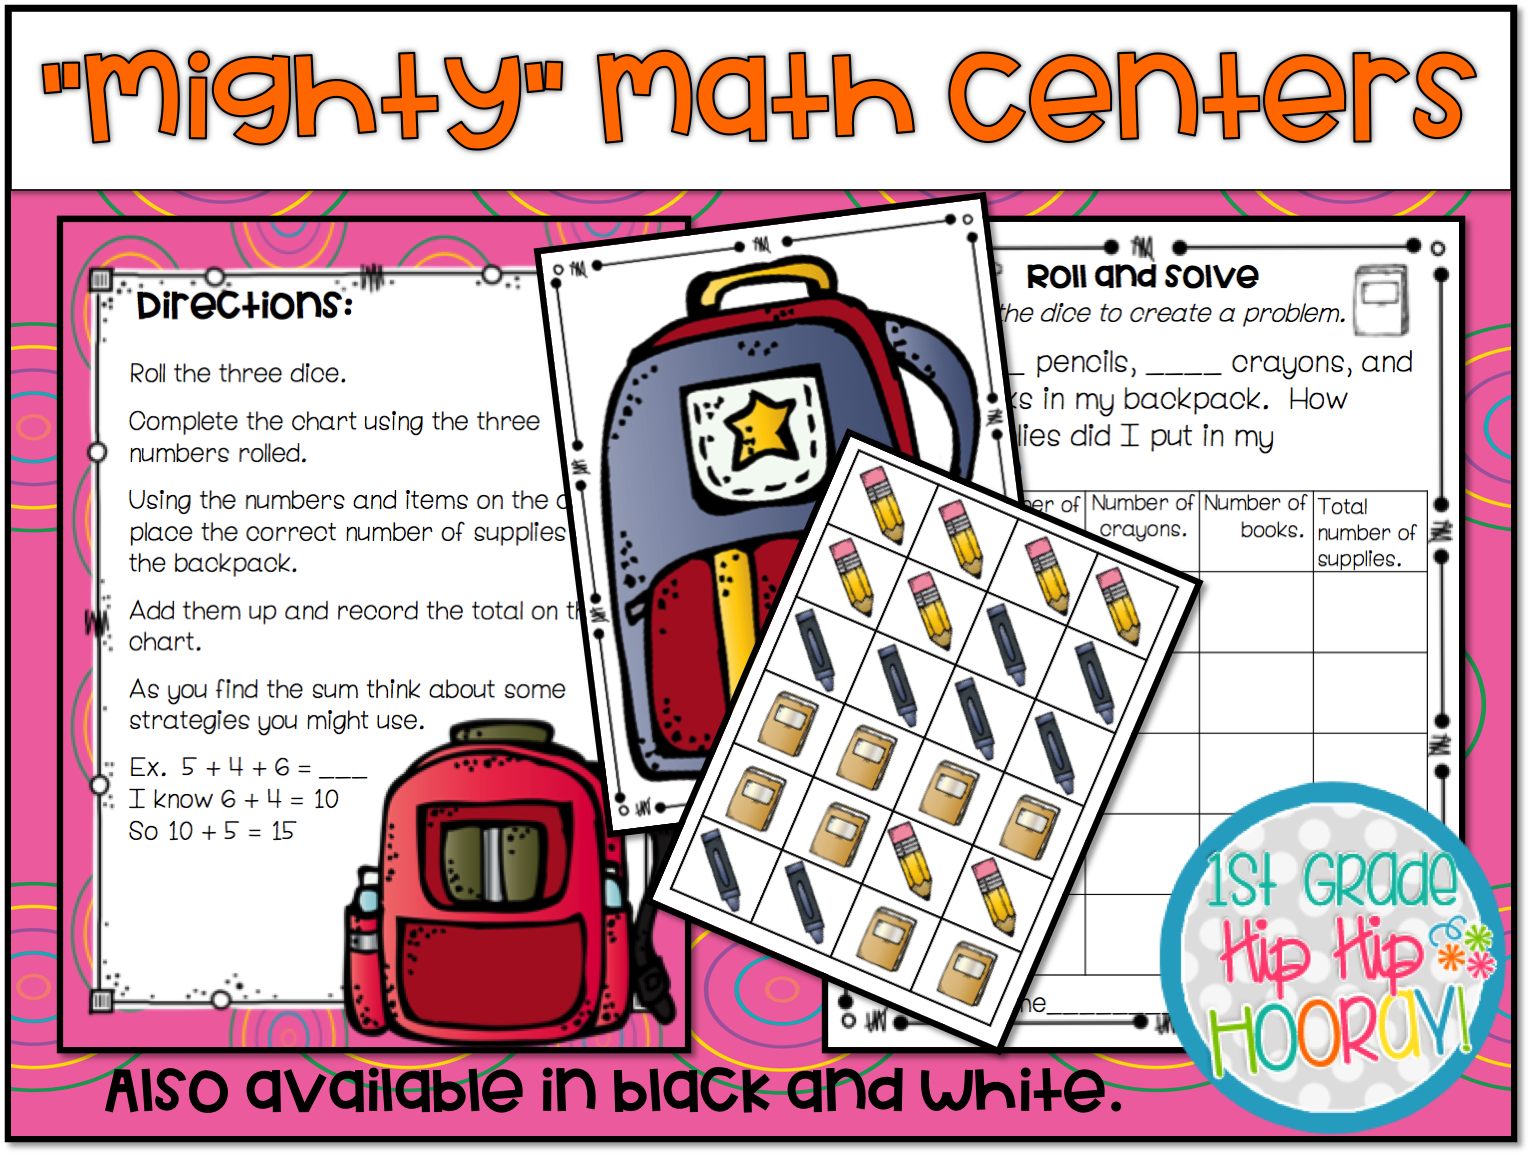 1st Grade Hip Hip Hooray Mighty Math Centers For Operations And Algebraic Thinking